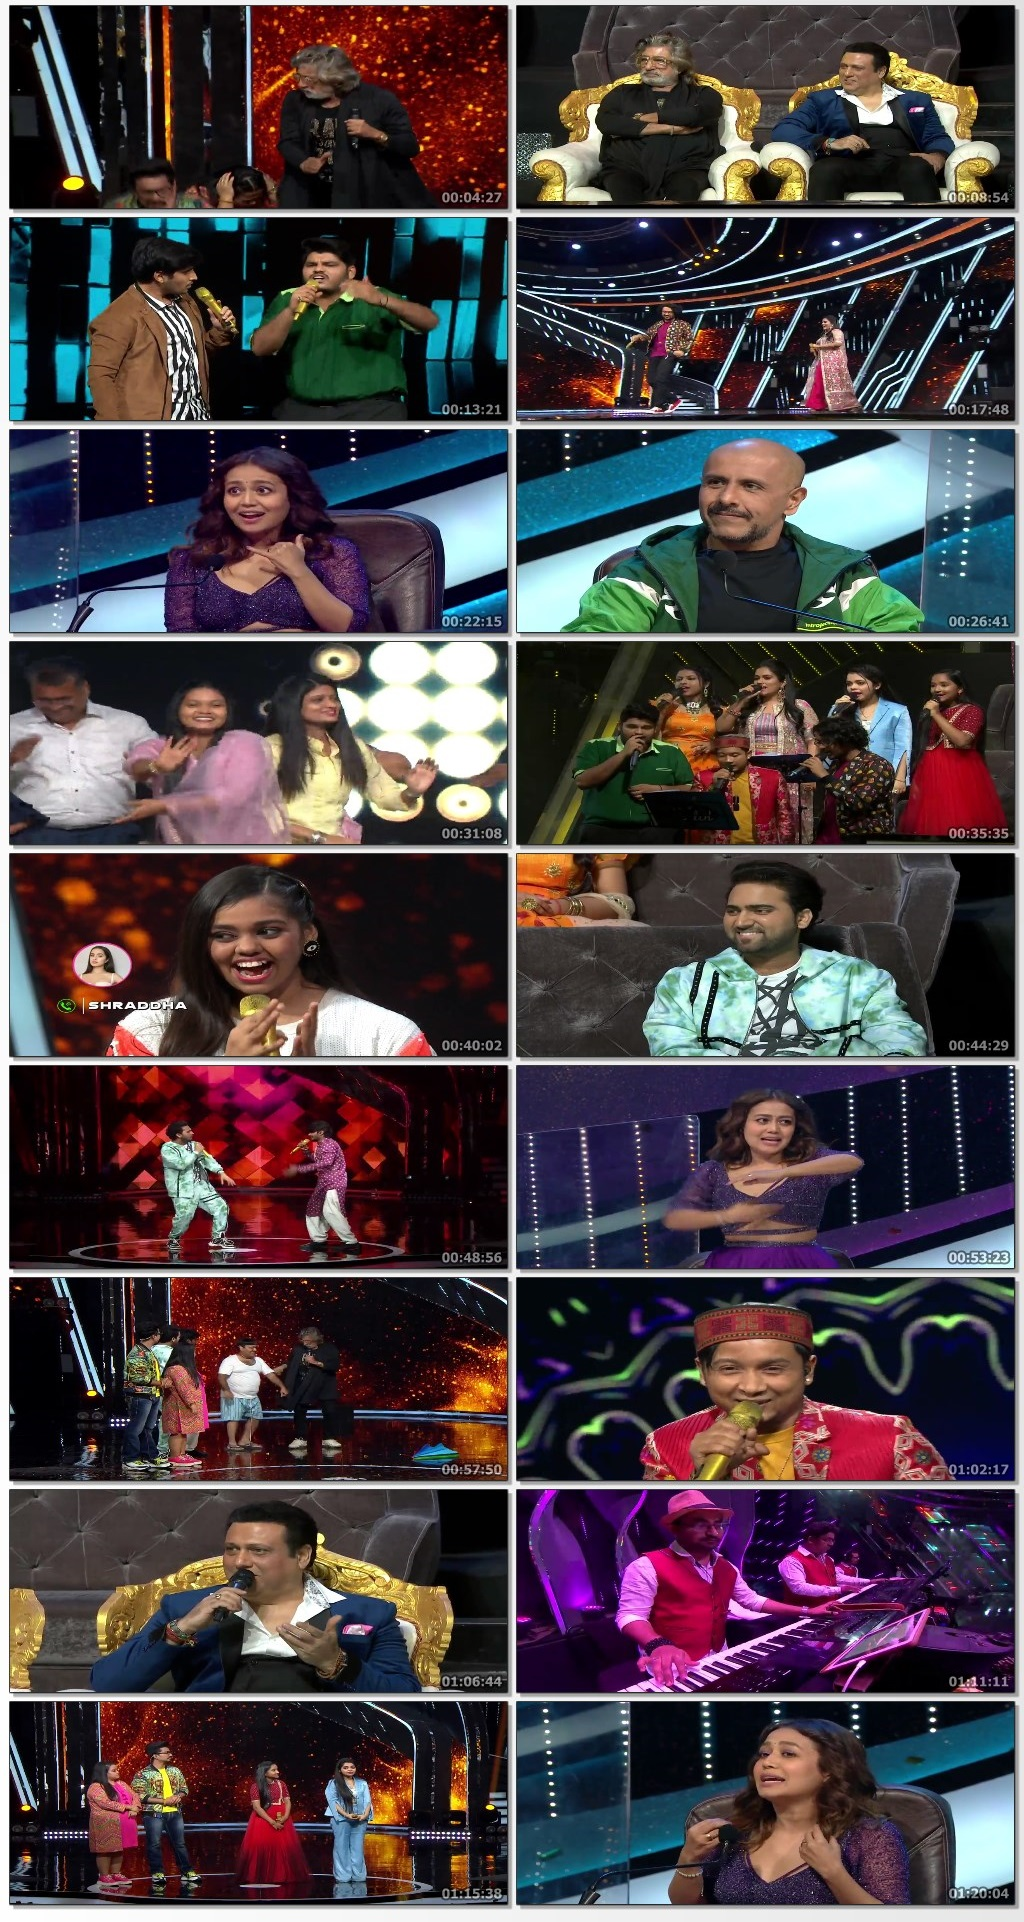 Indian-Idol-S12-27th-February-2021-www-7-Star-HD-Dev-Hindi-Full-Show-720p-HDRip-600-MB-1-mkv-thumbs